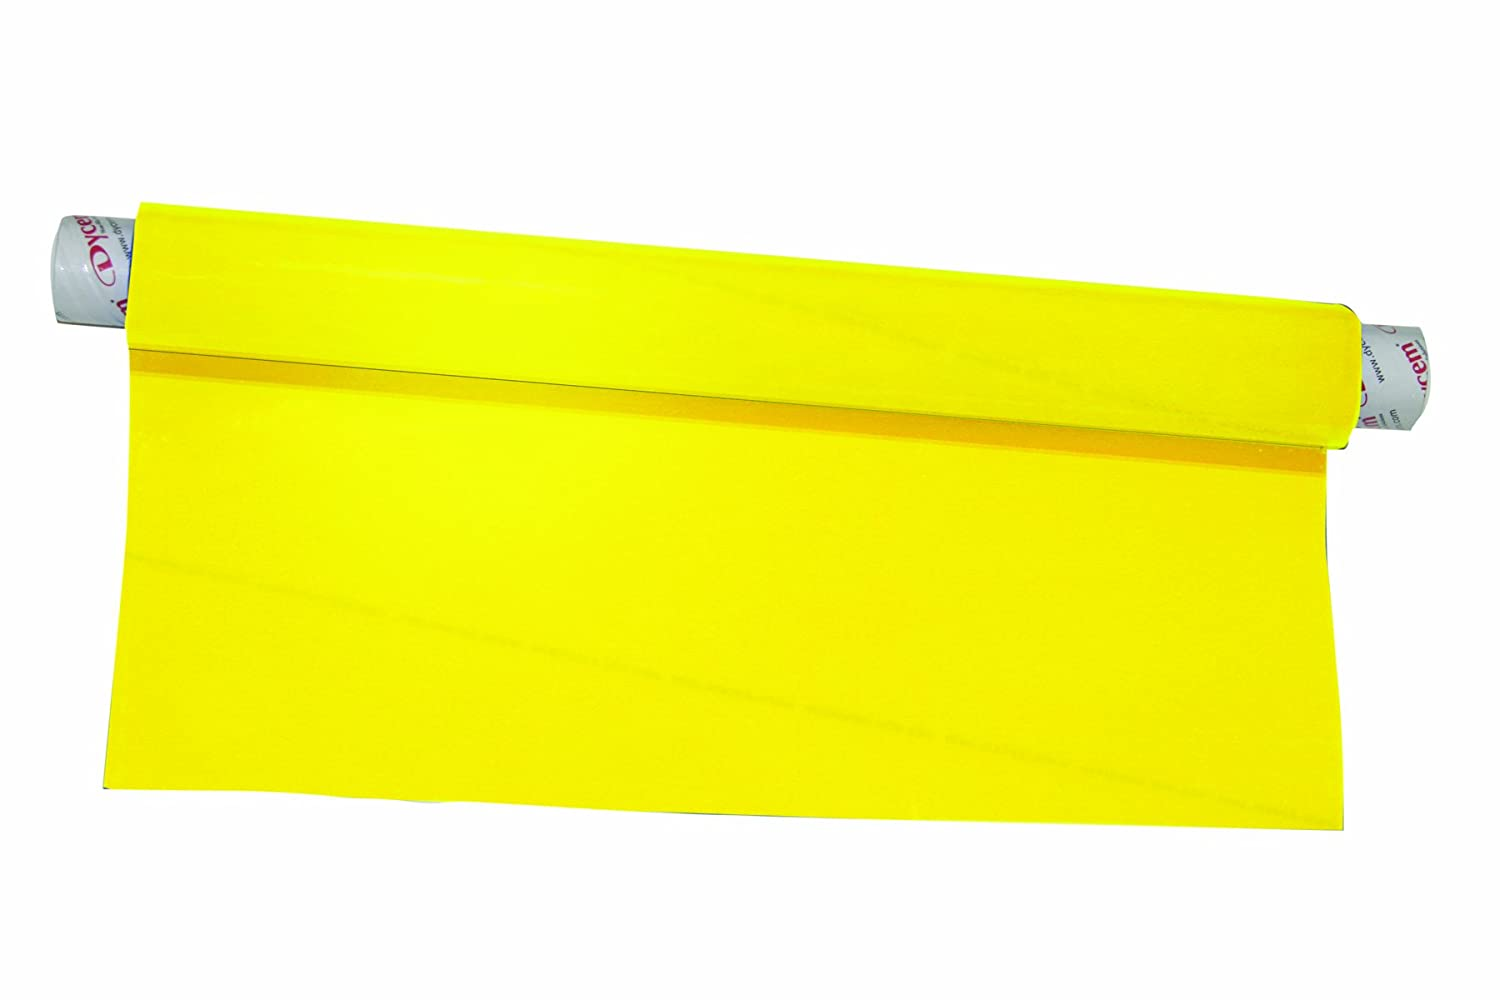 Dycem Popular brand in the world Non-Slip Material Roll Special price Yellow X 3.25 16